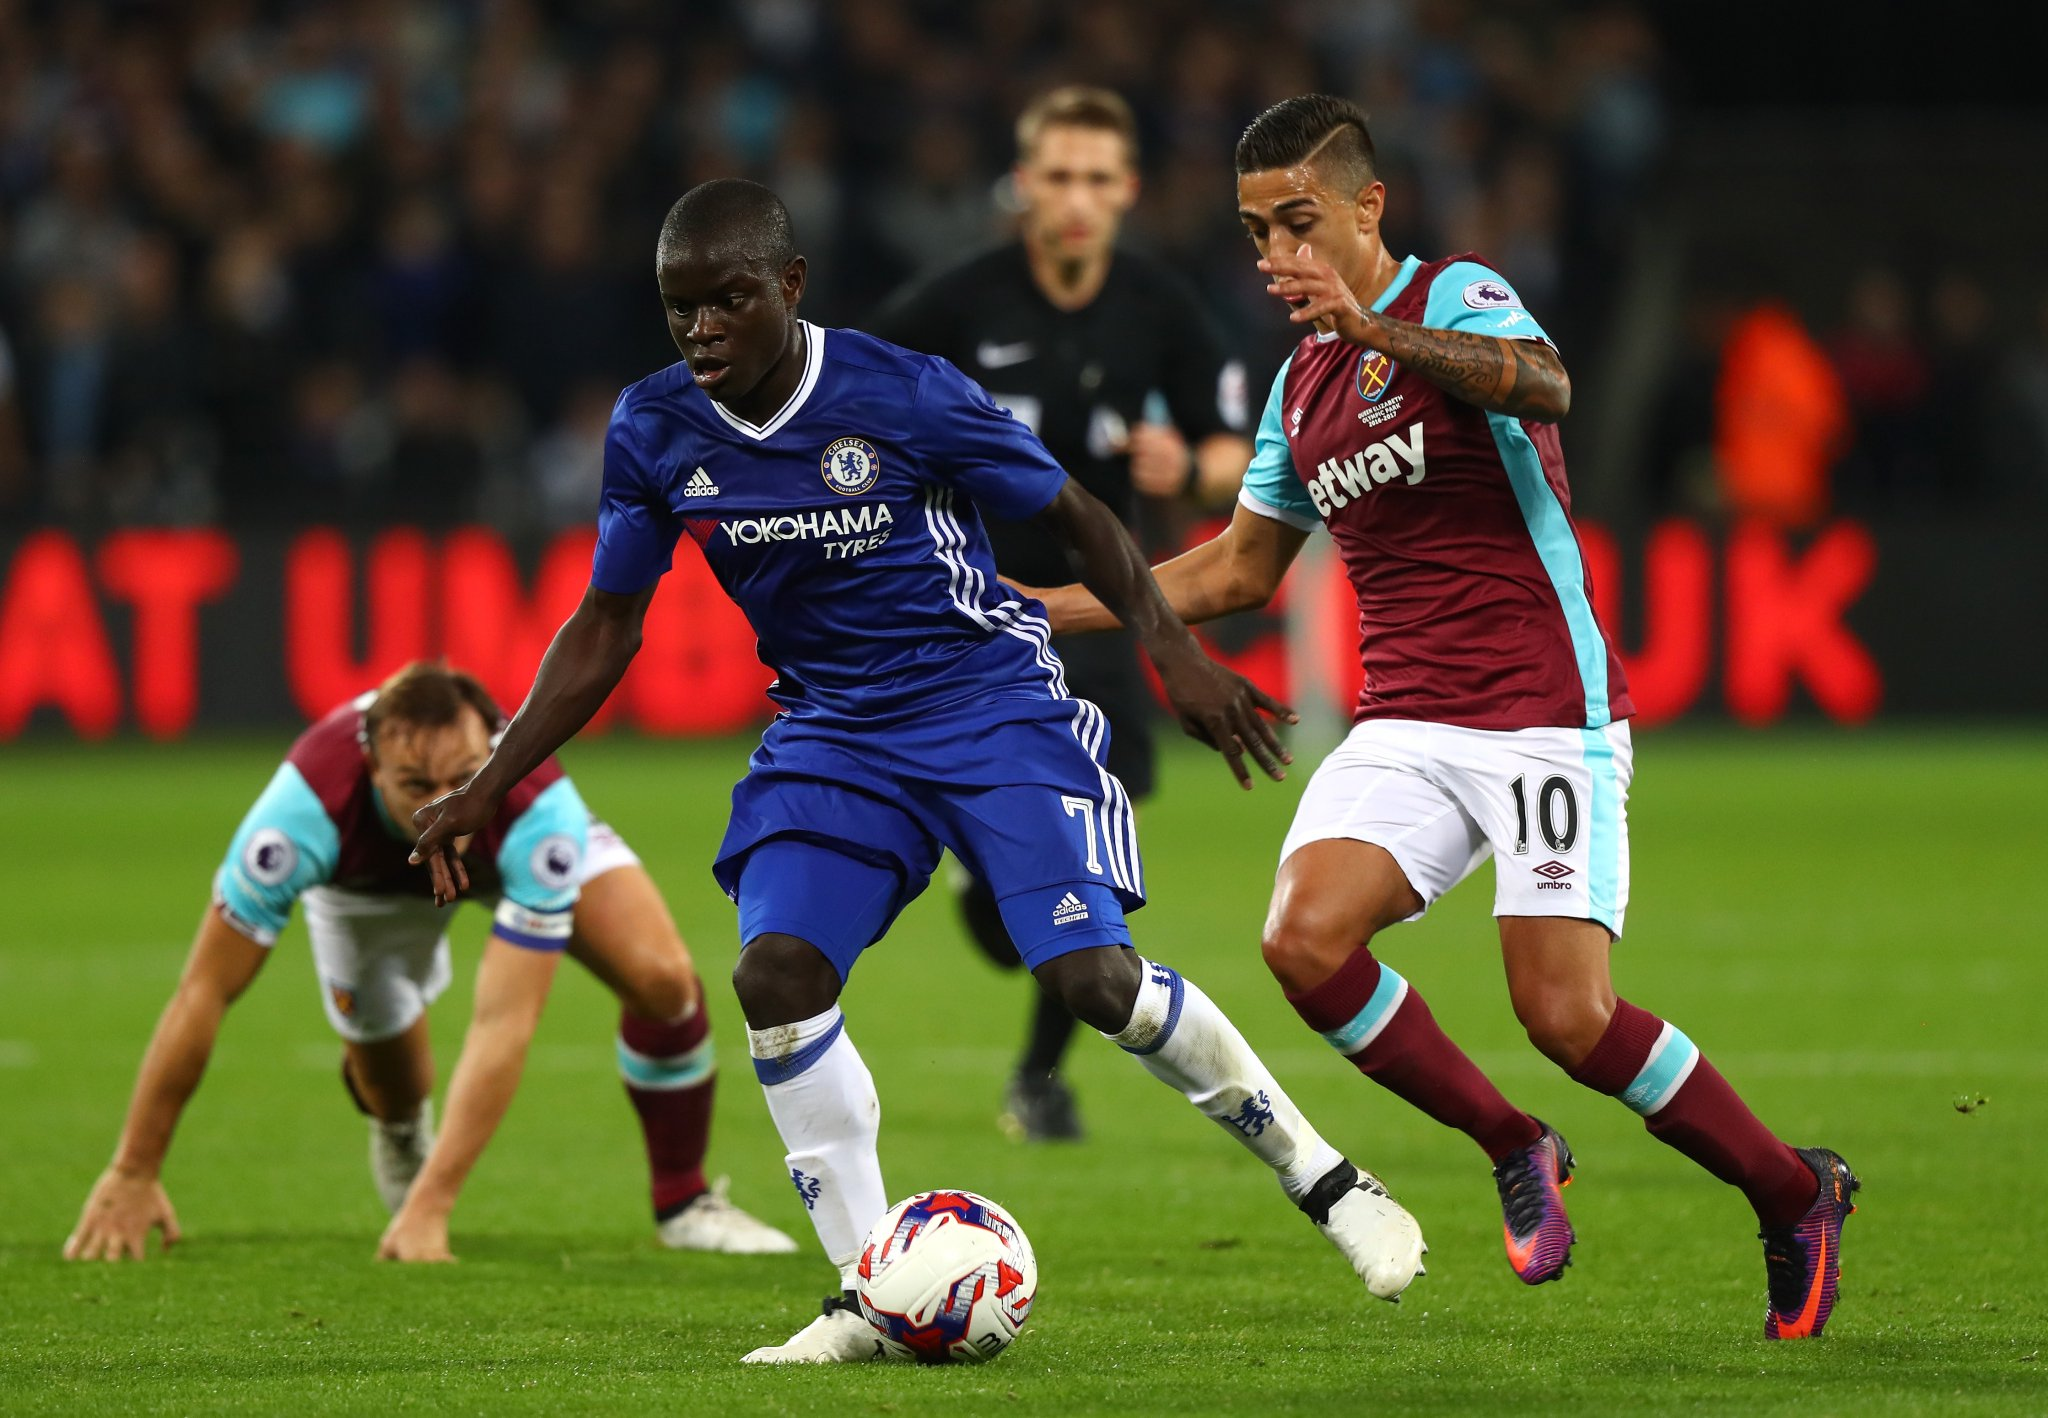 EFL Cup: Mikel, Moses Missing As Chelsea Fall To West Ham